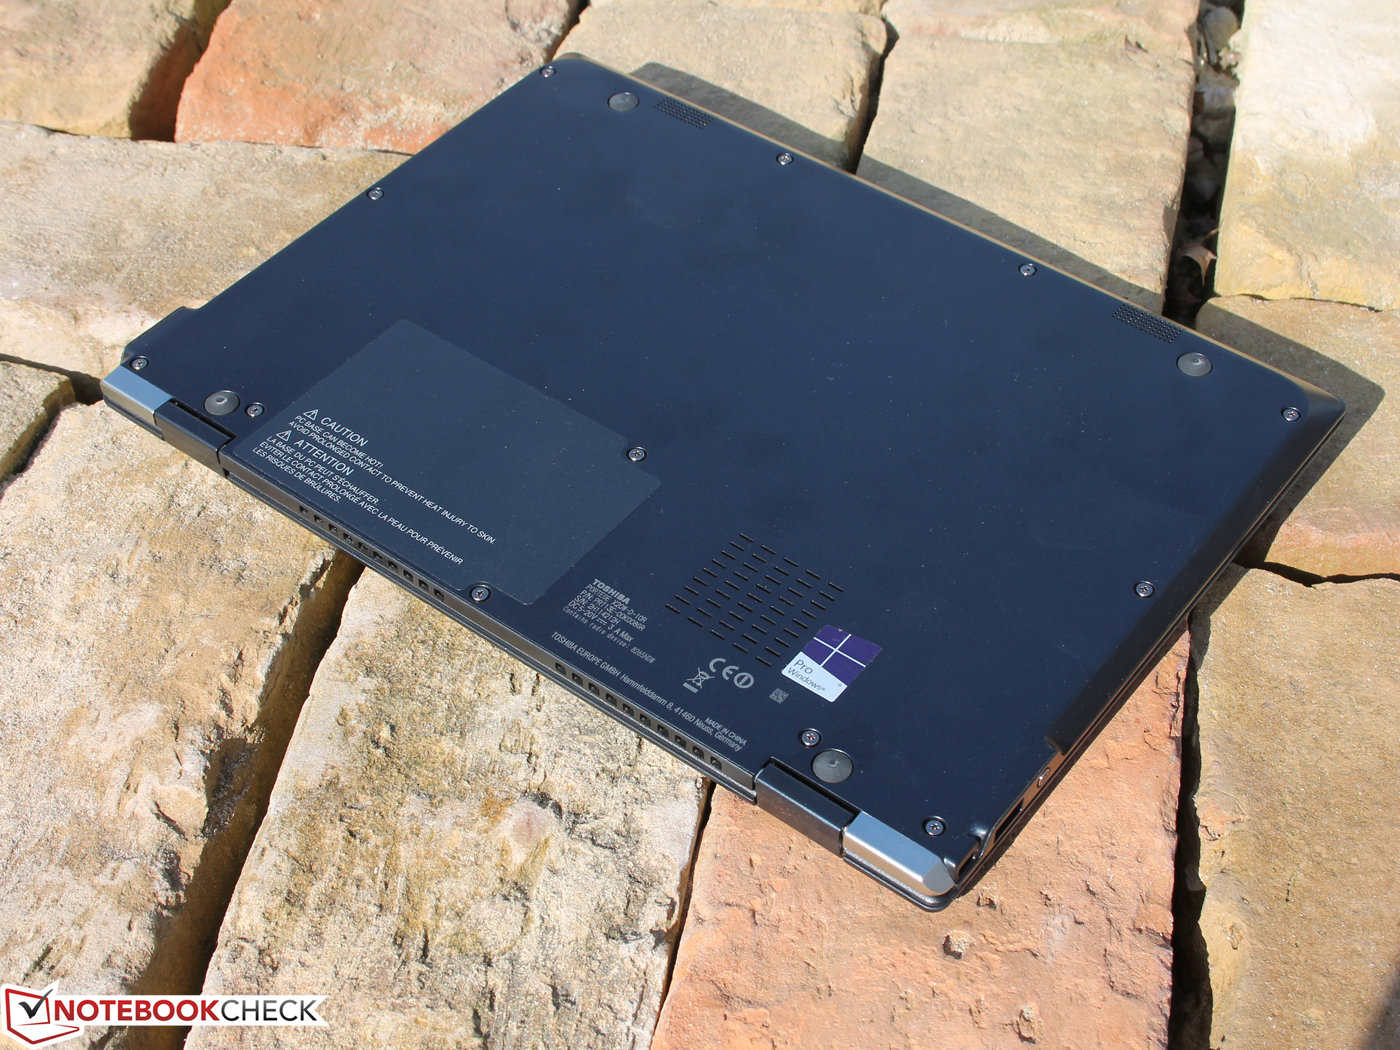 Toshiba Portg X20w 7600u 512 Gb Convertible Review G7 Wiring Diagram The Hinges Design Causes A Big Gap Of 2 Mm Between Display And Base In Tablet Mode However This Is Intentional As It Prevents Vents From Being